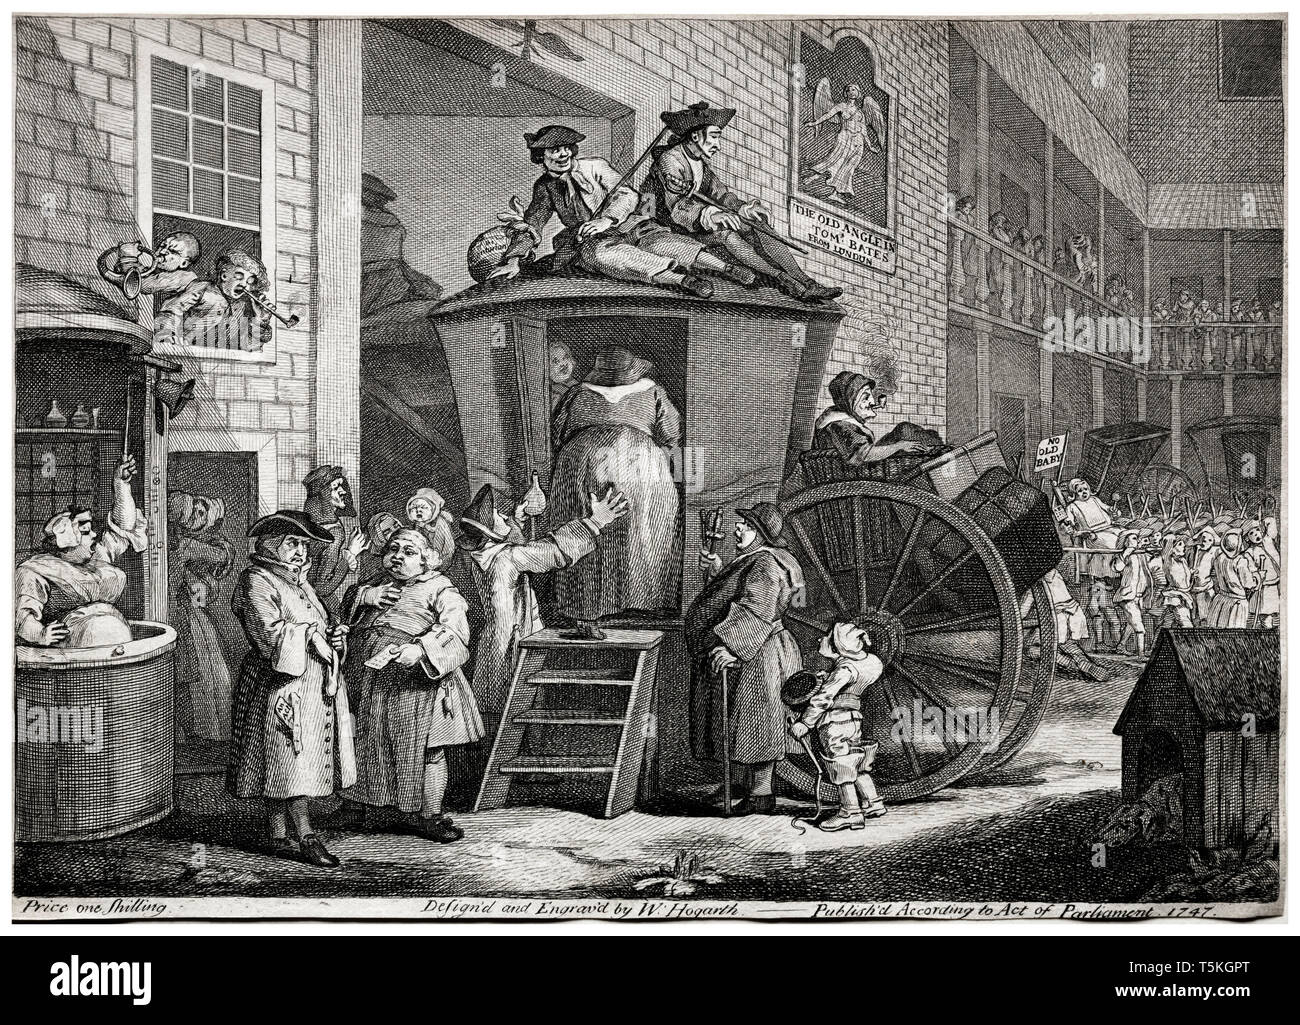 William Hogarth, The Stage Coach, engraving, 1747 Stock Photo